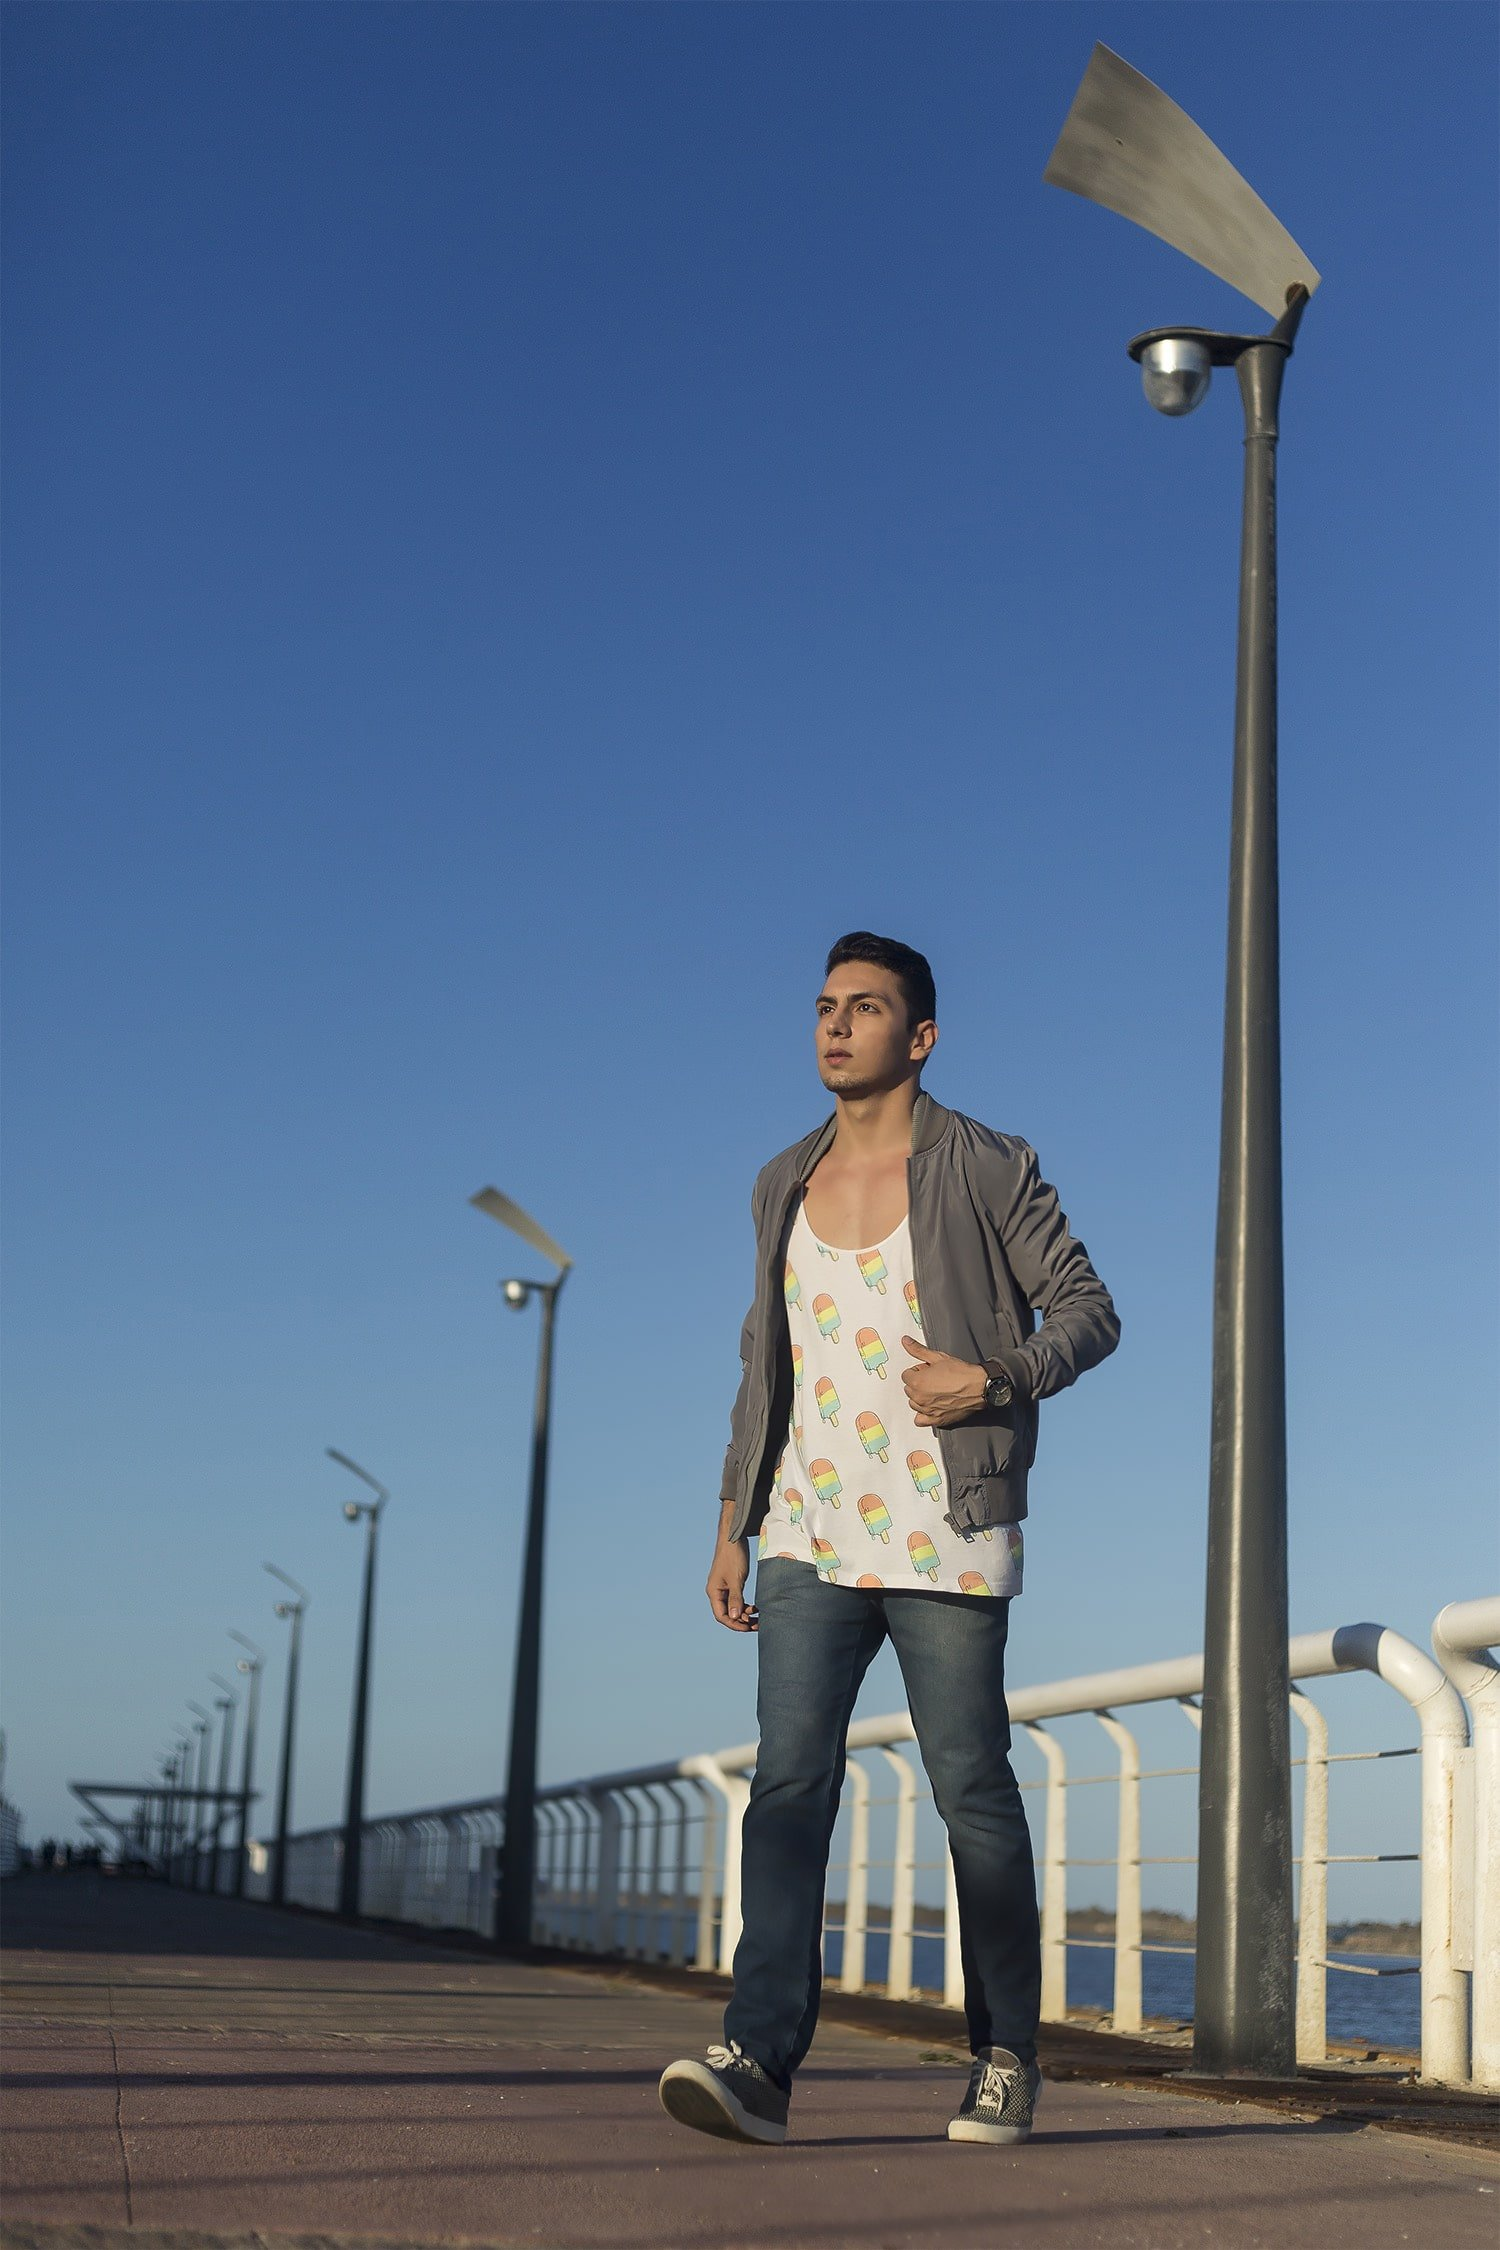 Estilo HQSC Regata divertida e look urbano Juan Alves 7